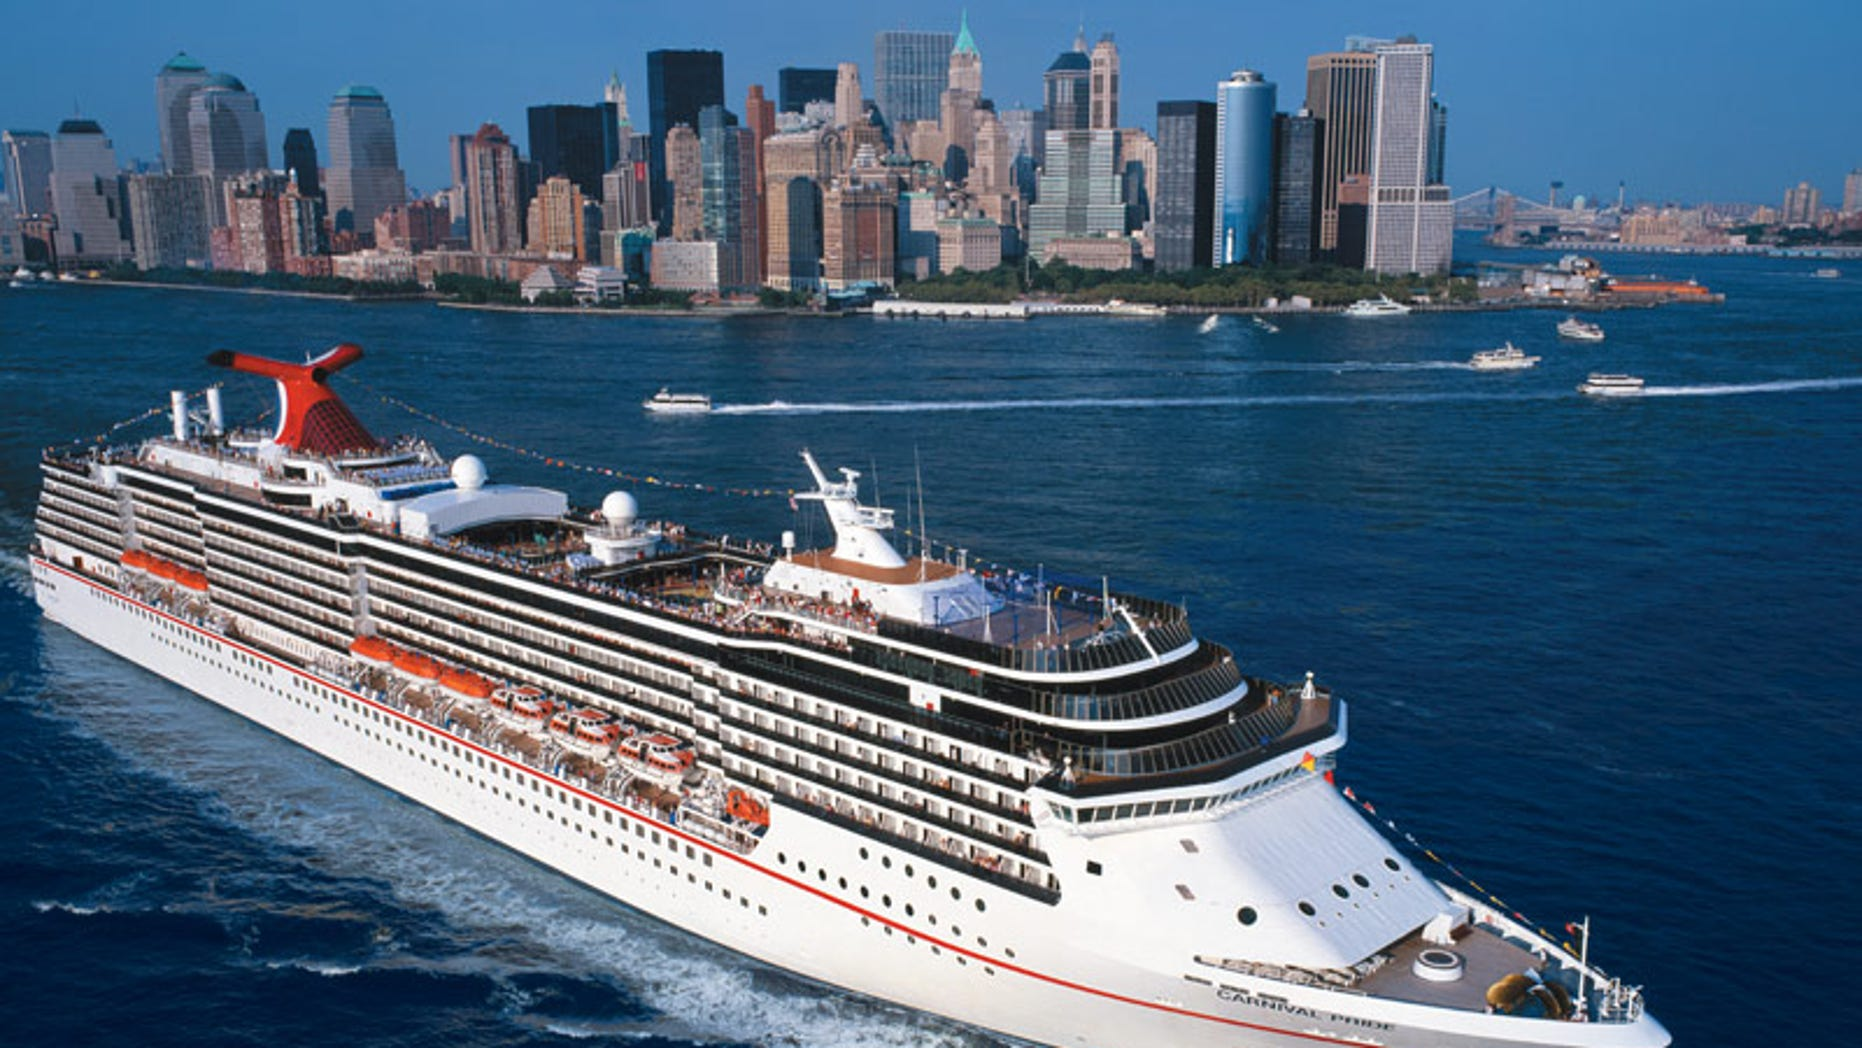 The Carnival Pride, pictured, was returning from an eight-day trip to the Bahamas when it crashed into a gangway while docking.